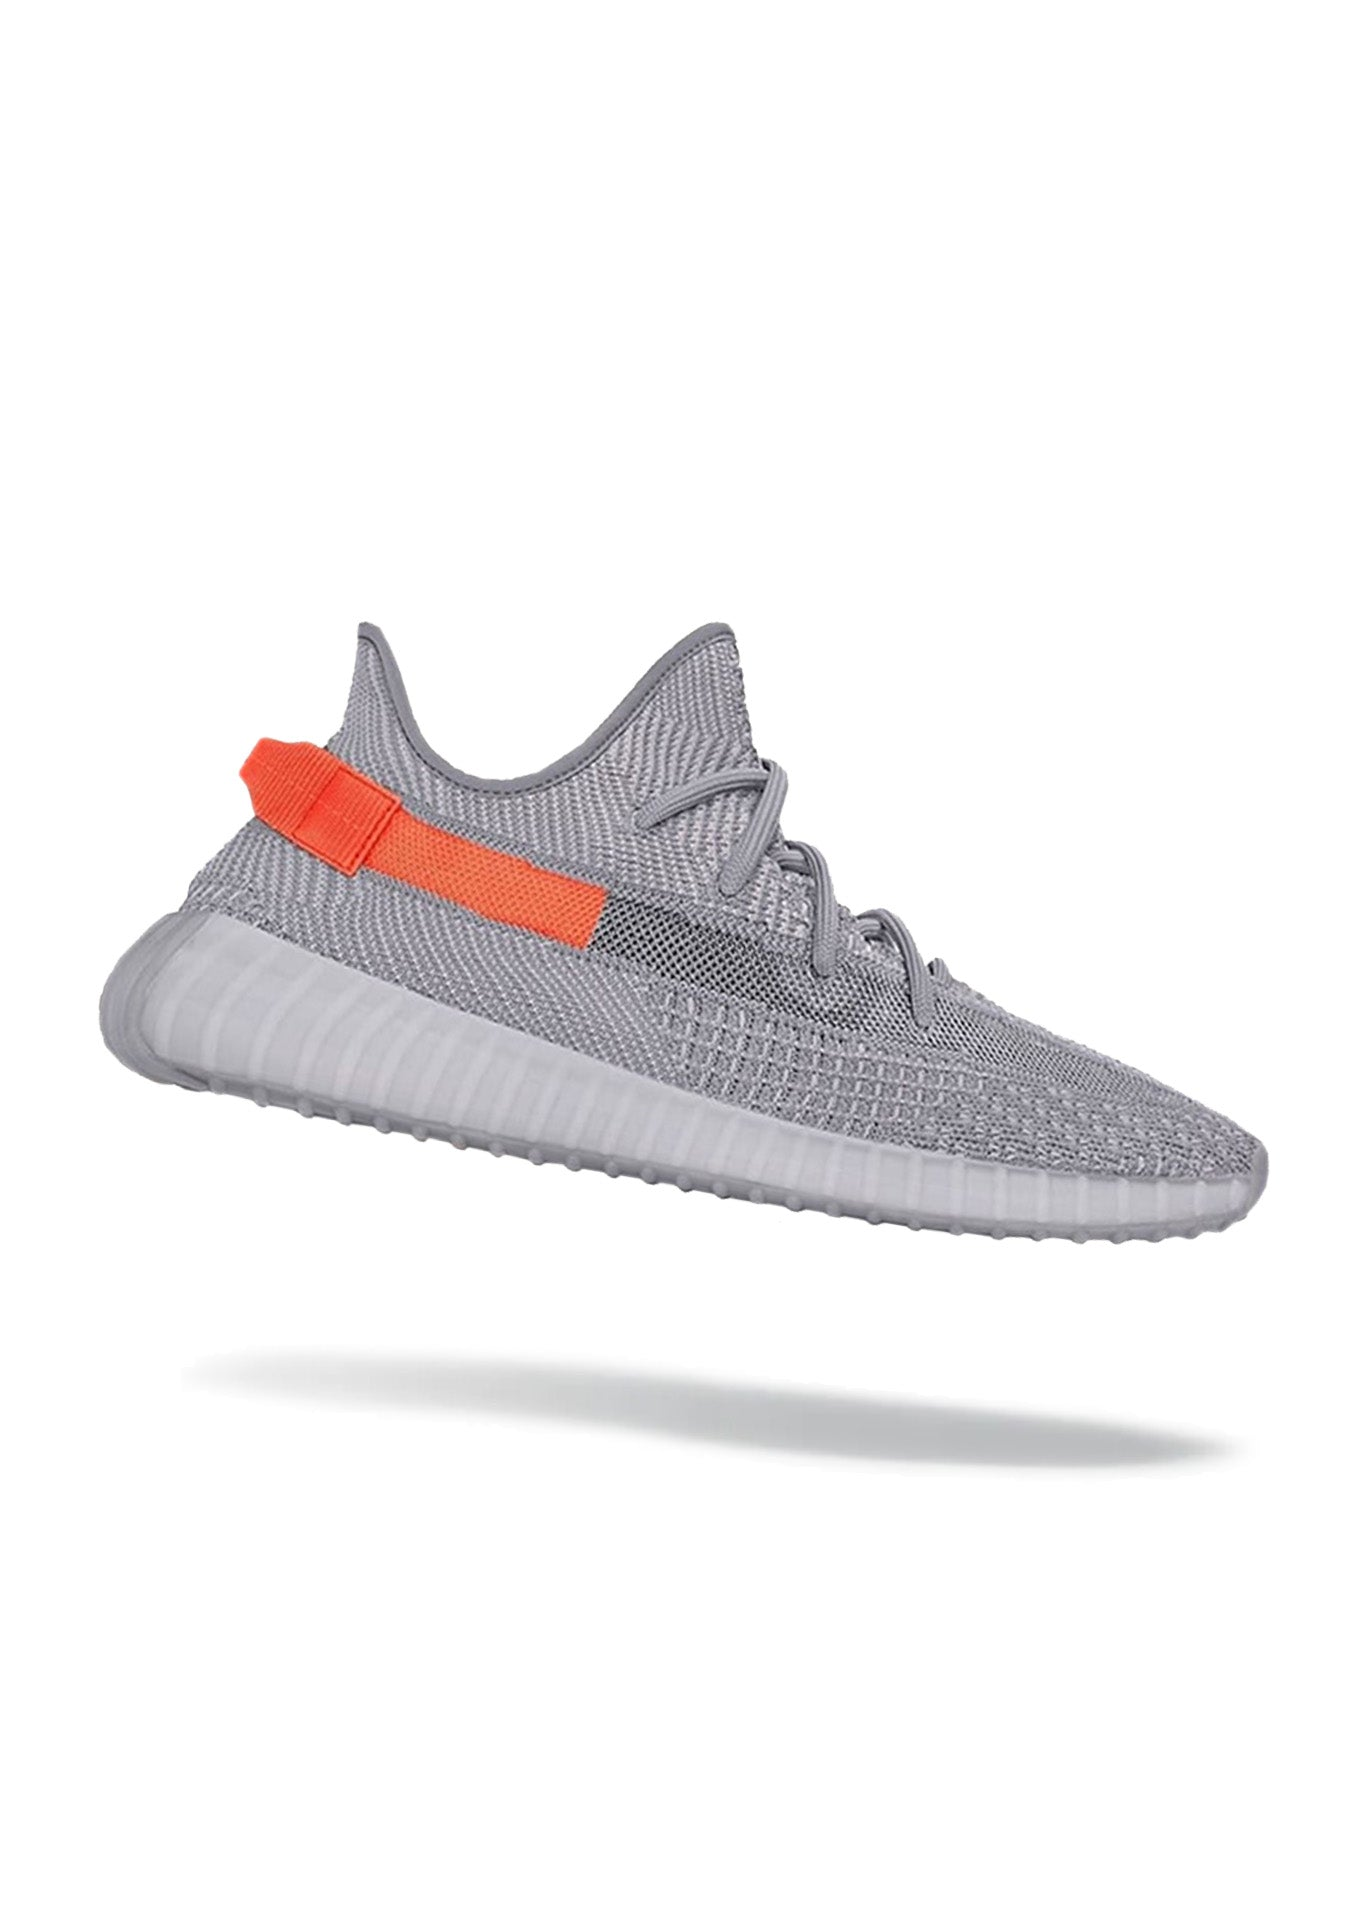 Adidas Yeezy 350 V2 Tail Light